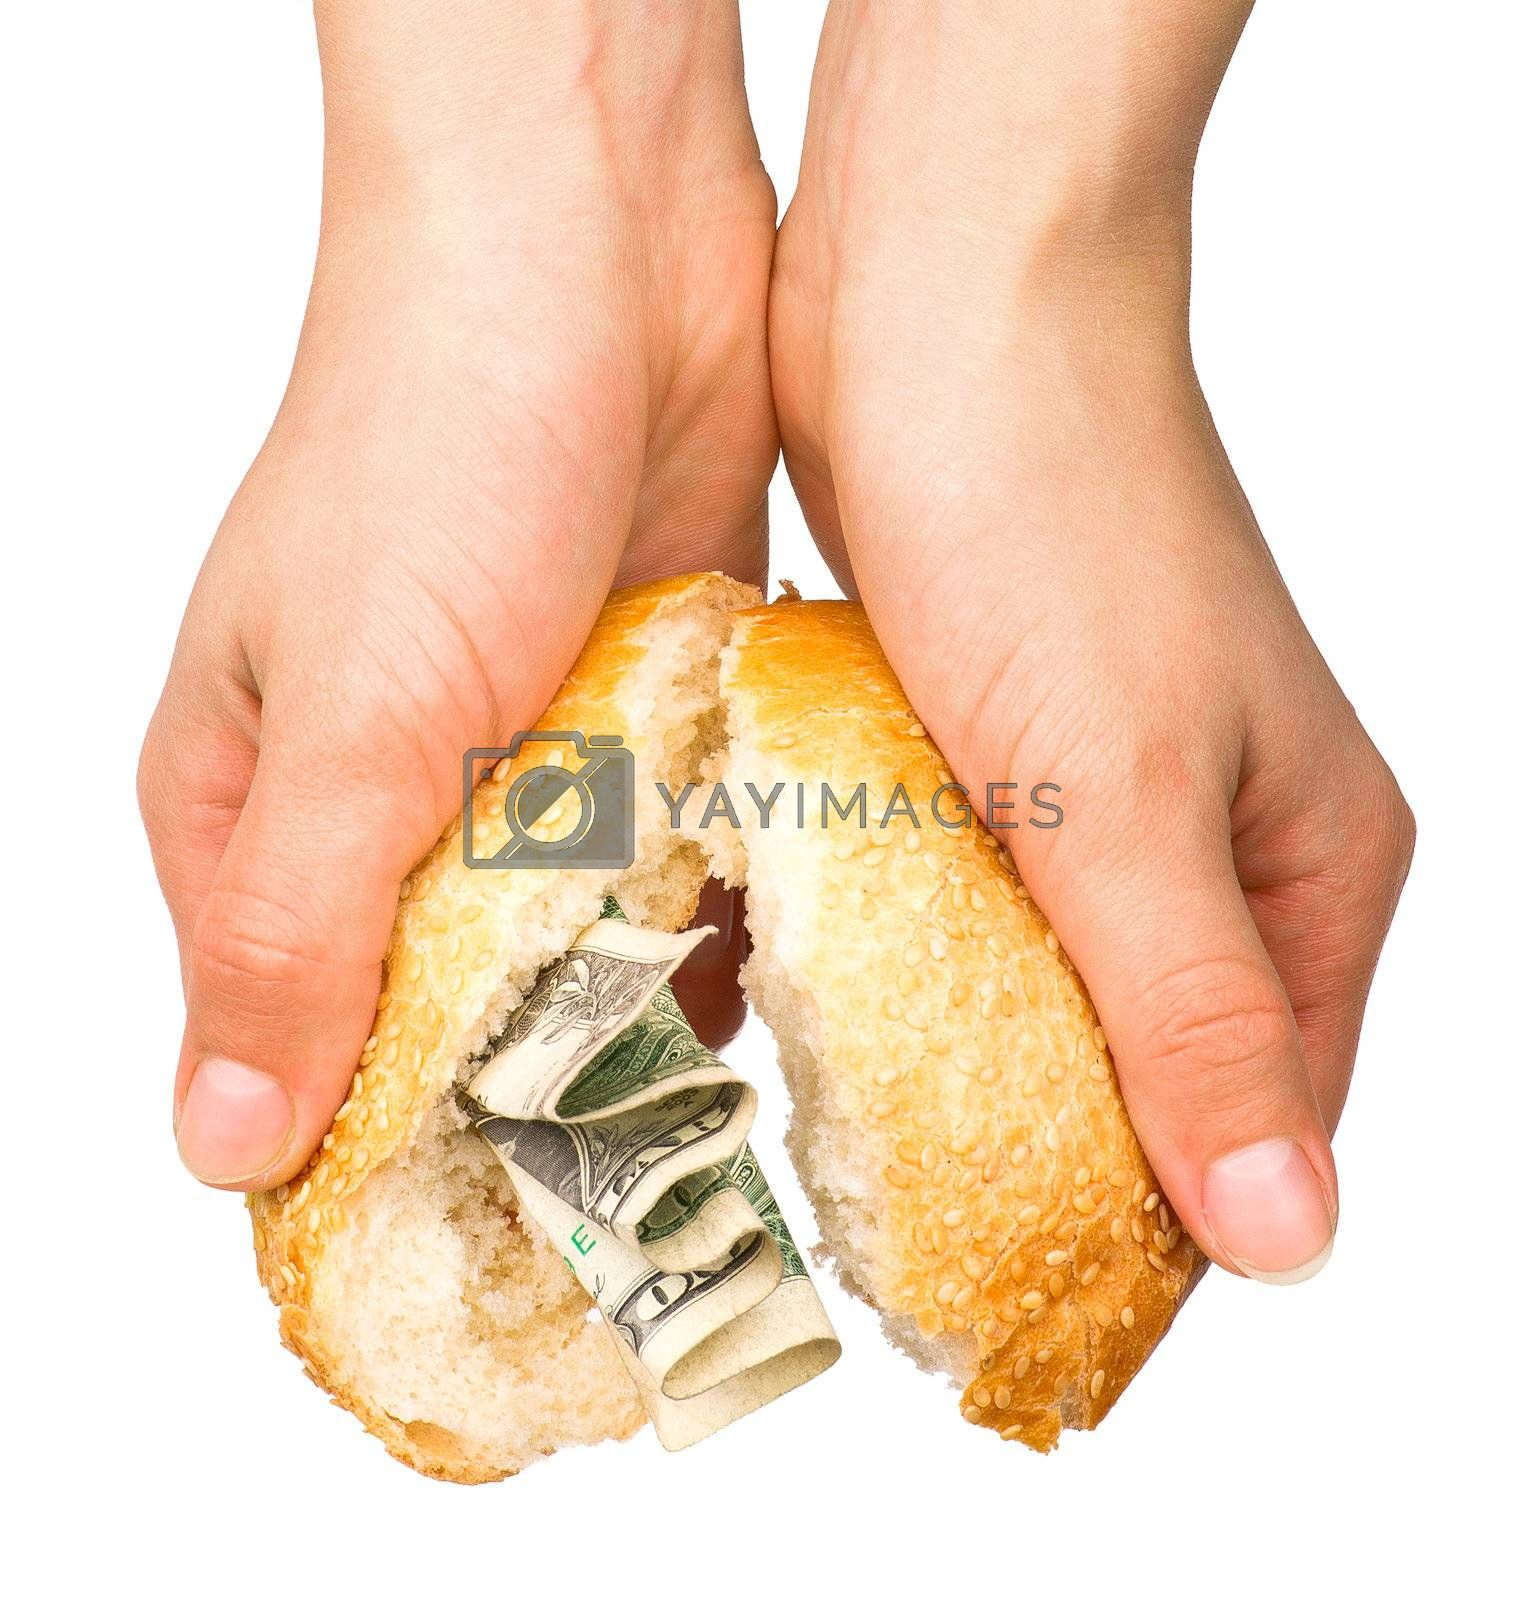 Hands holding the bun stuffed with money